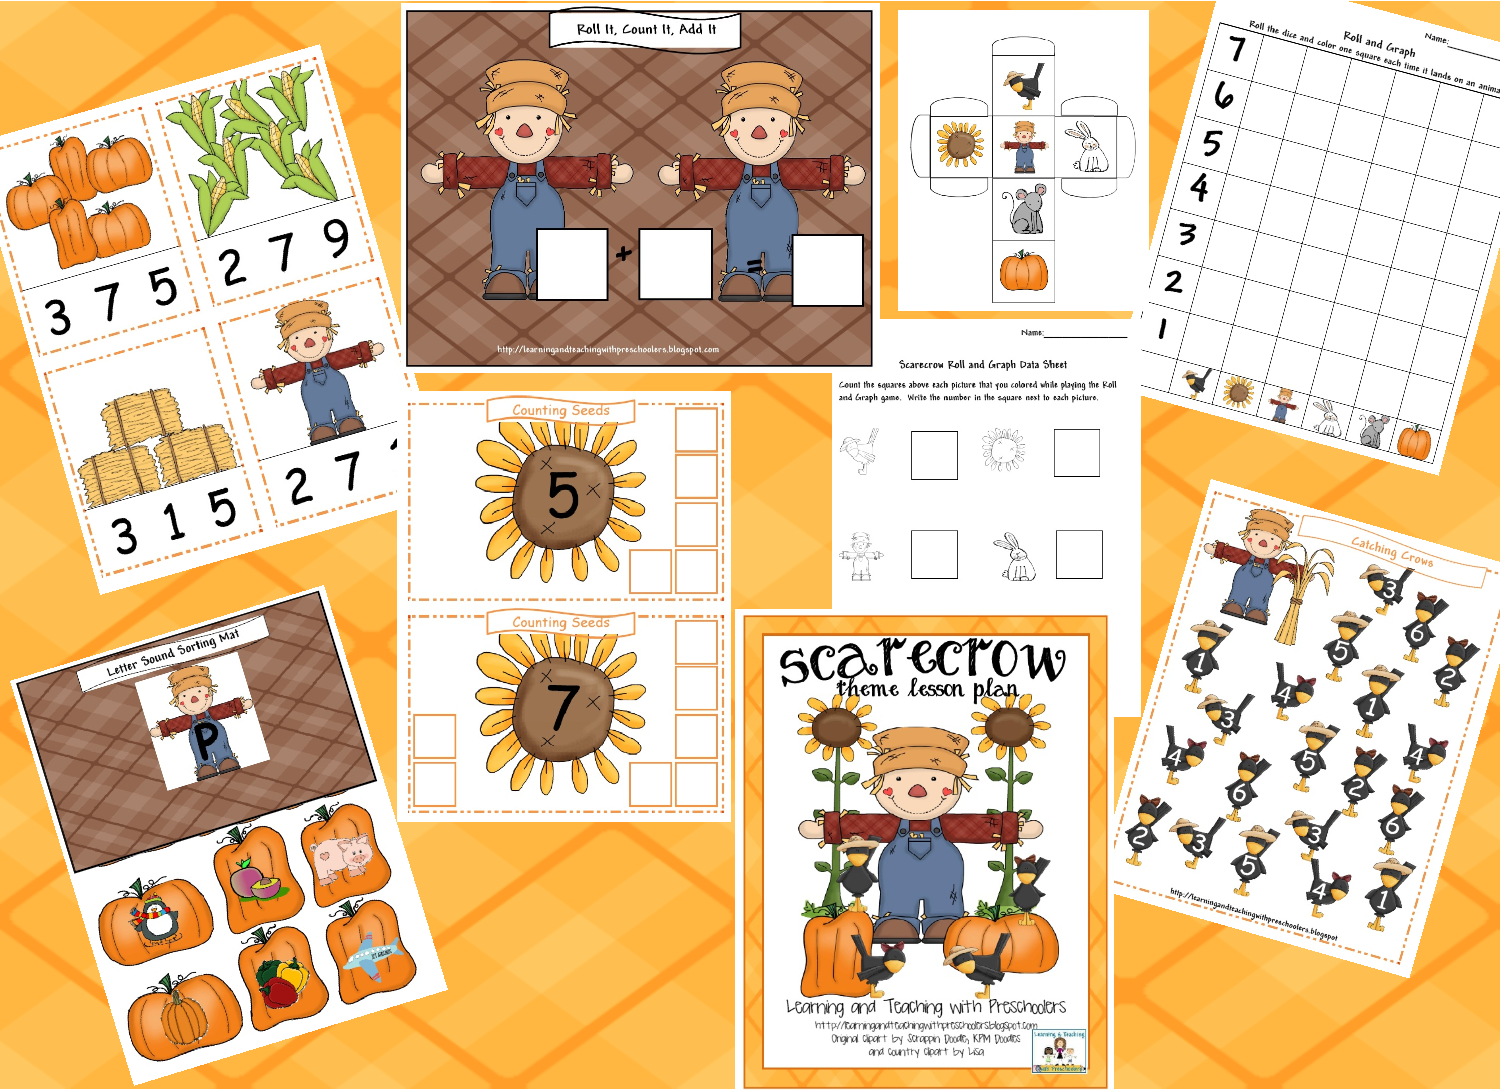 Learning And Teaching With Preschoolers New Scarecrow